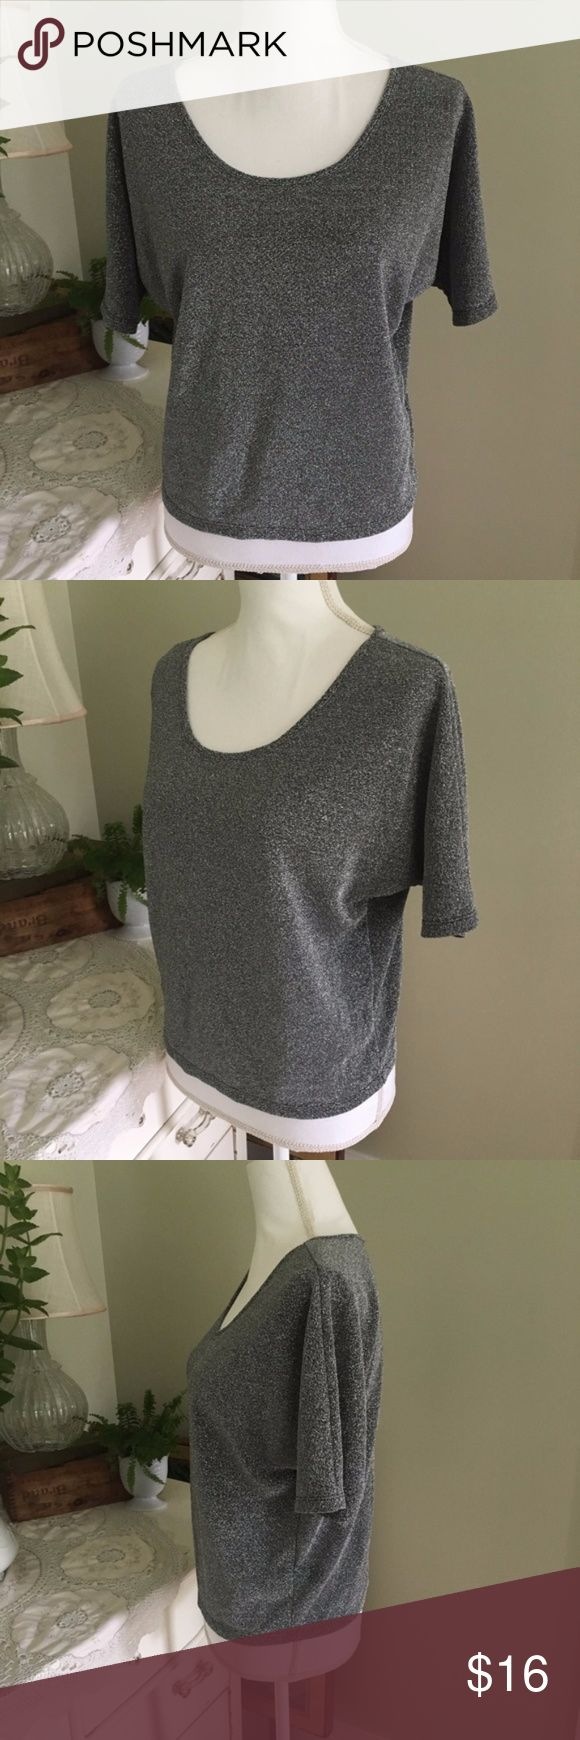 """Express Silver Short Sleeve Top This shiny, silver top from Express is slightly sheer and lightweight. Features short sleeves and scoop neck. Size: XS. Chest: 21.5"""". Length: 21"""". Express Tops"""